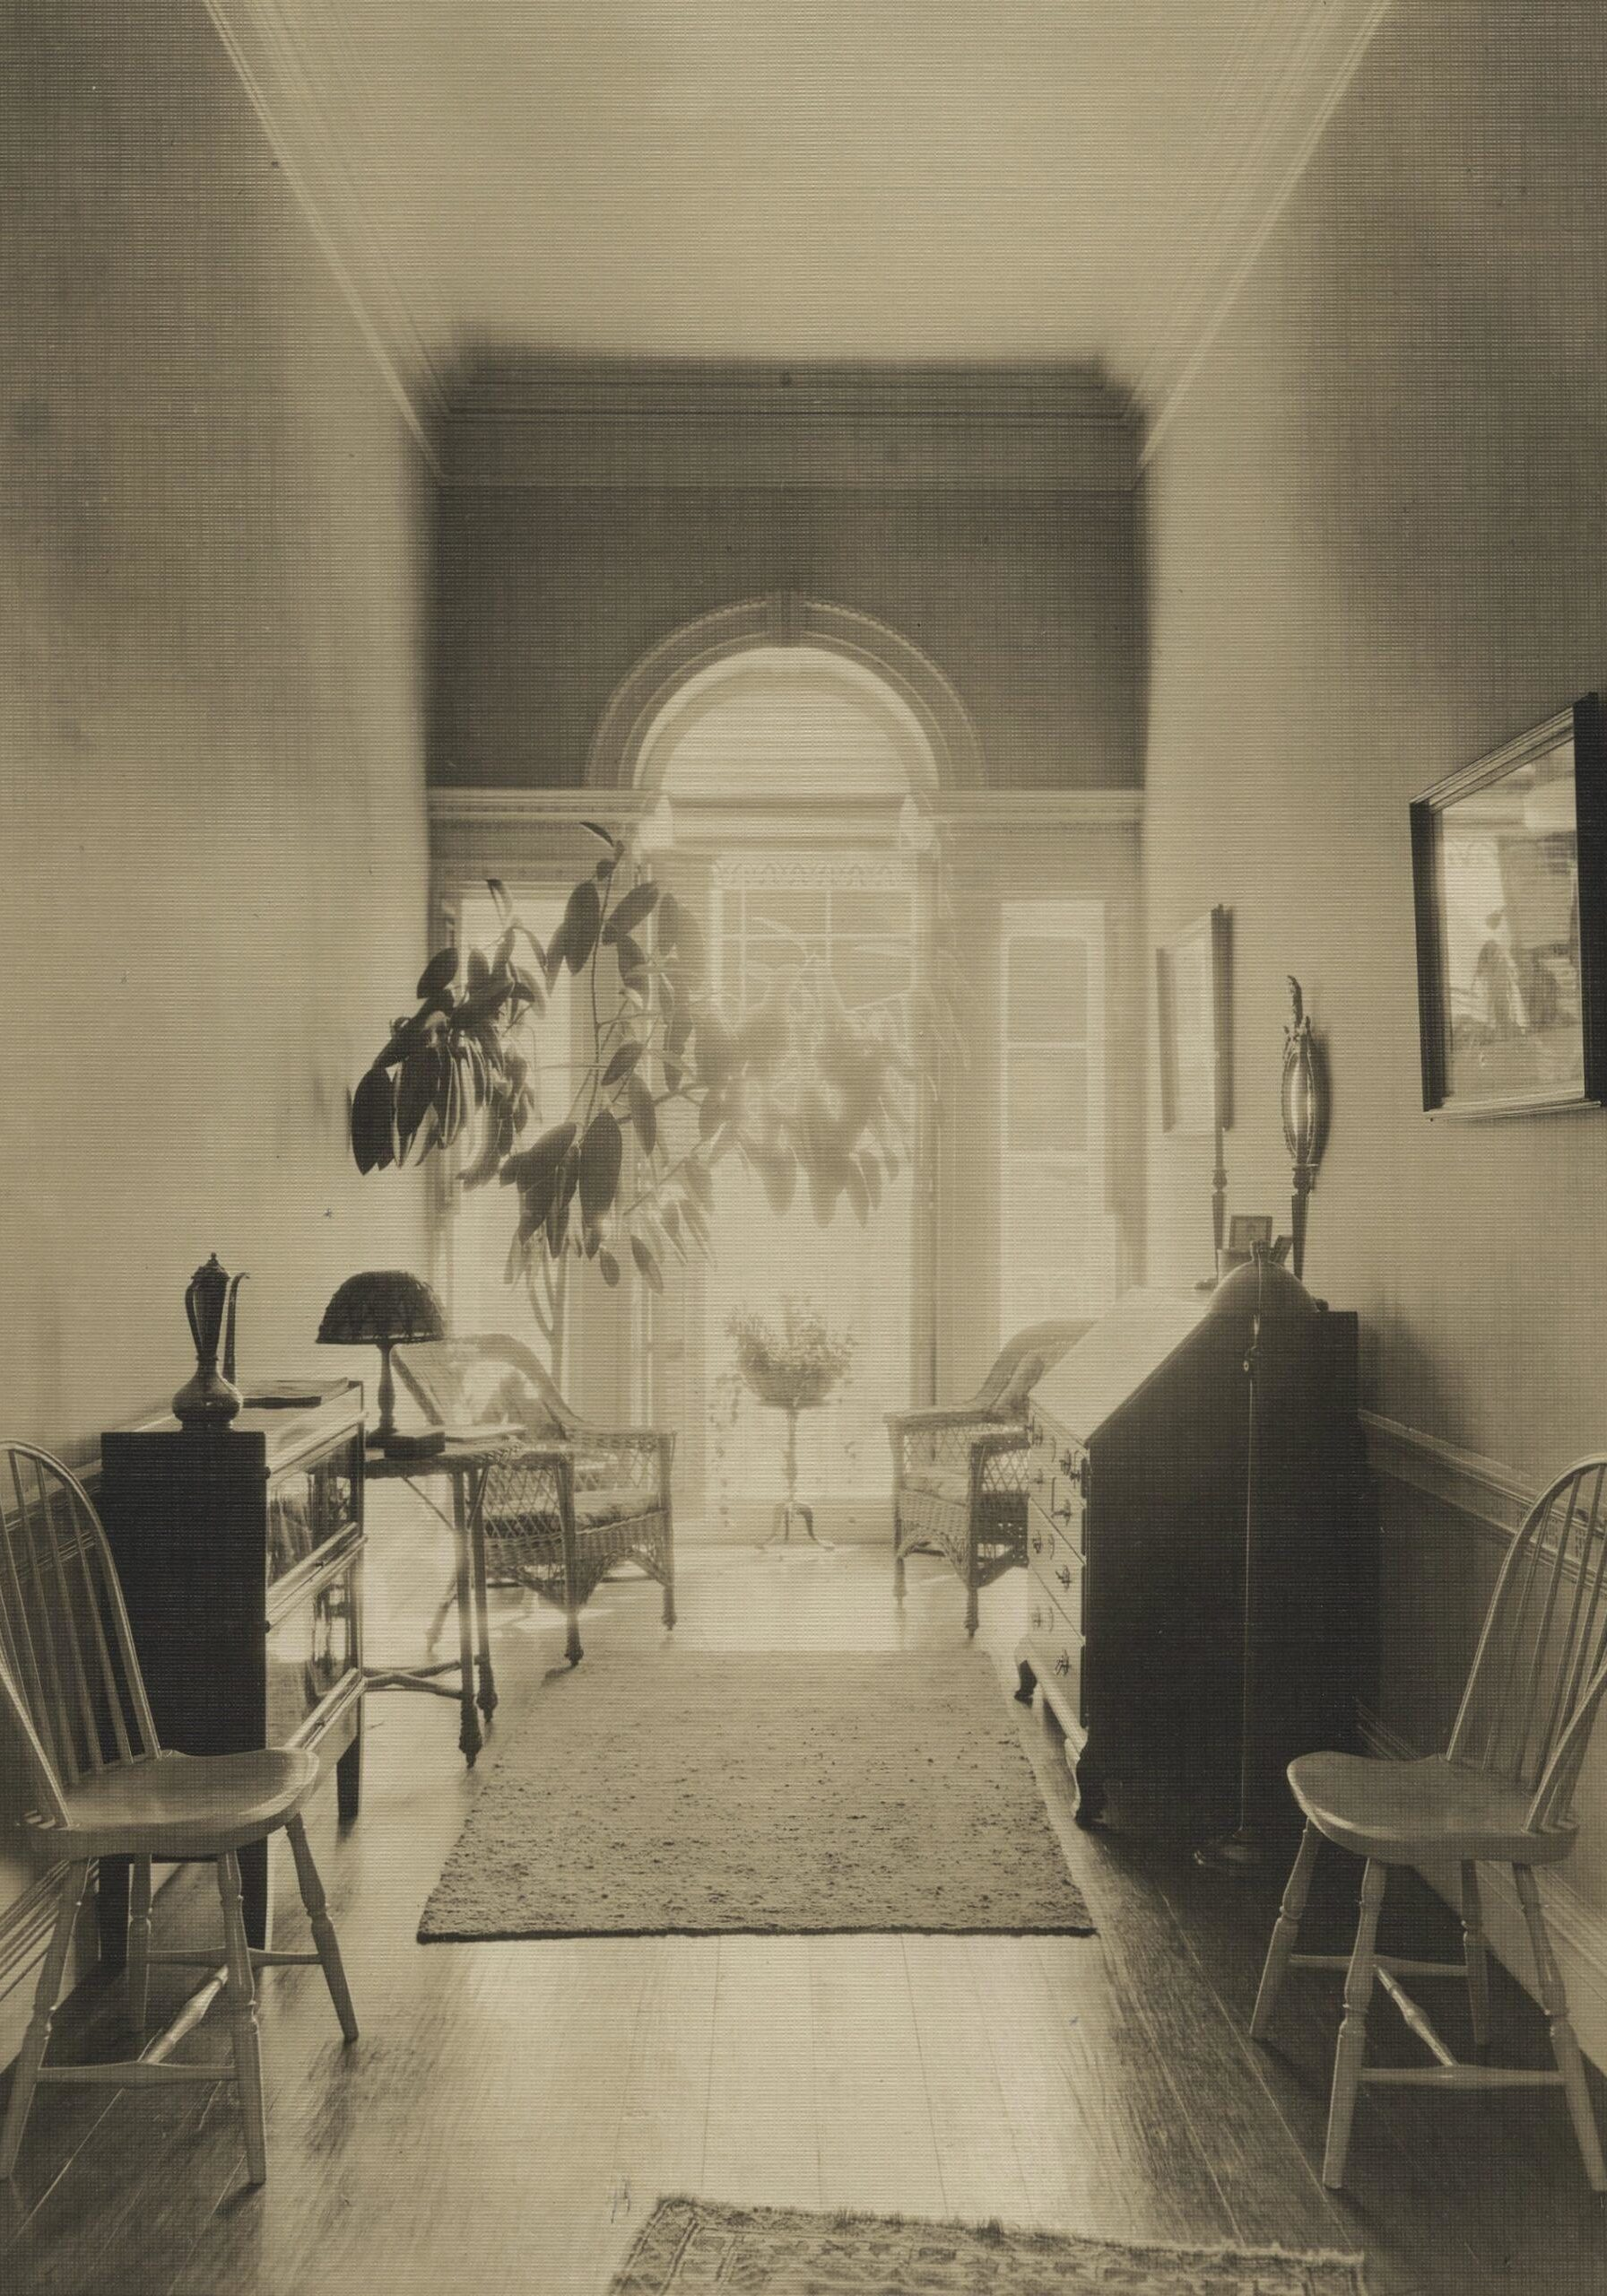 black-and-white photo looking down a hallway with furniture along the walls